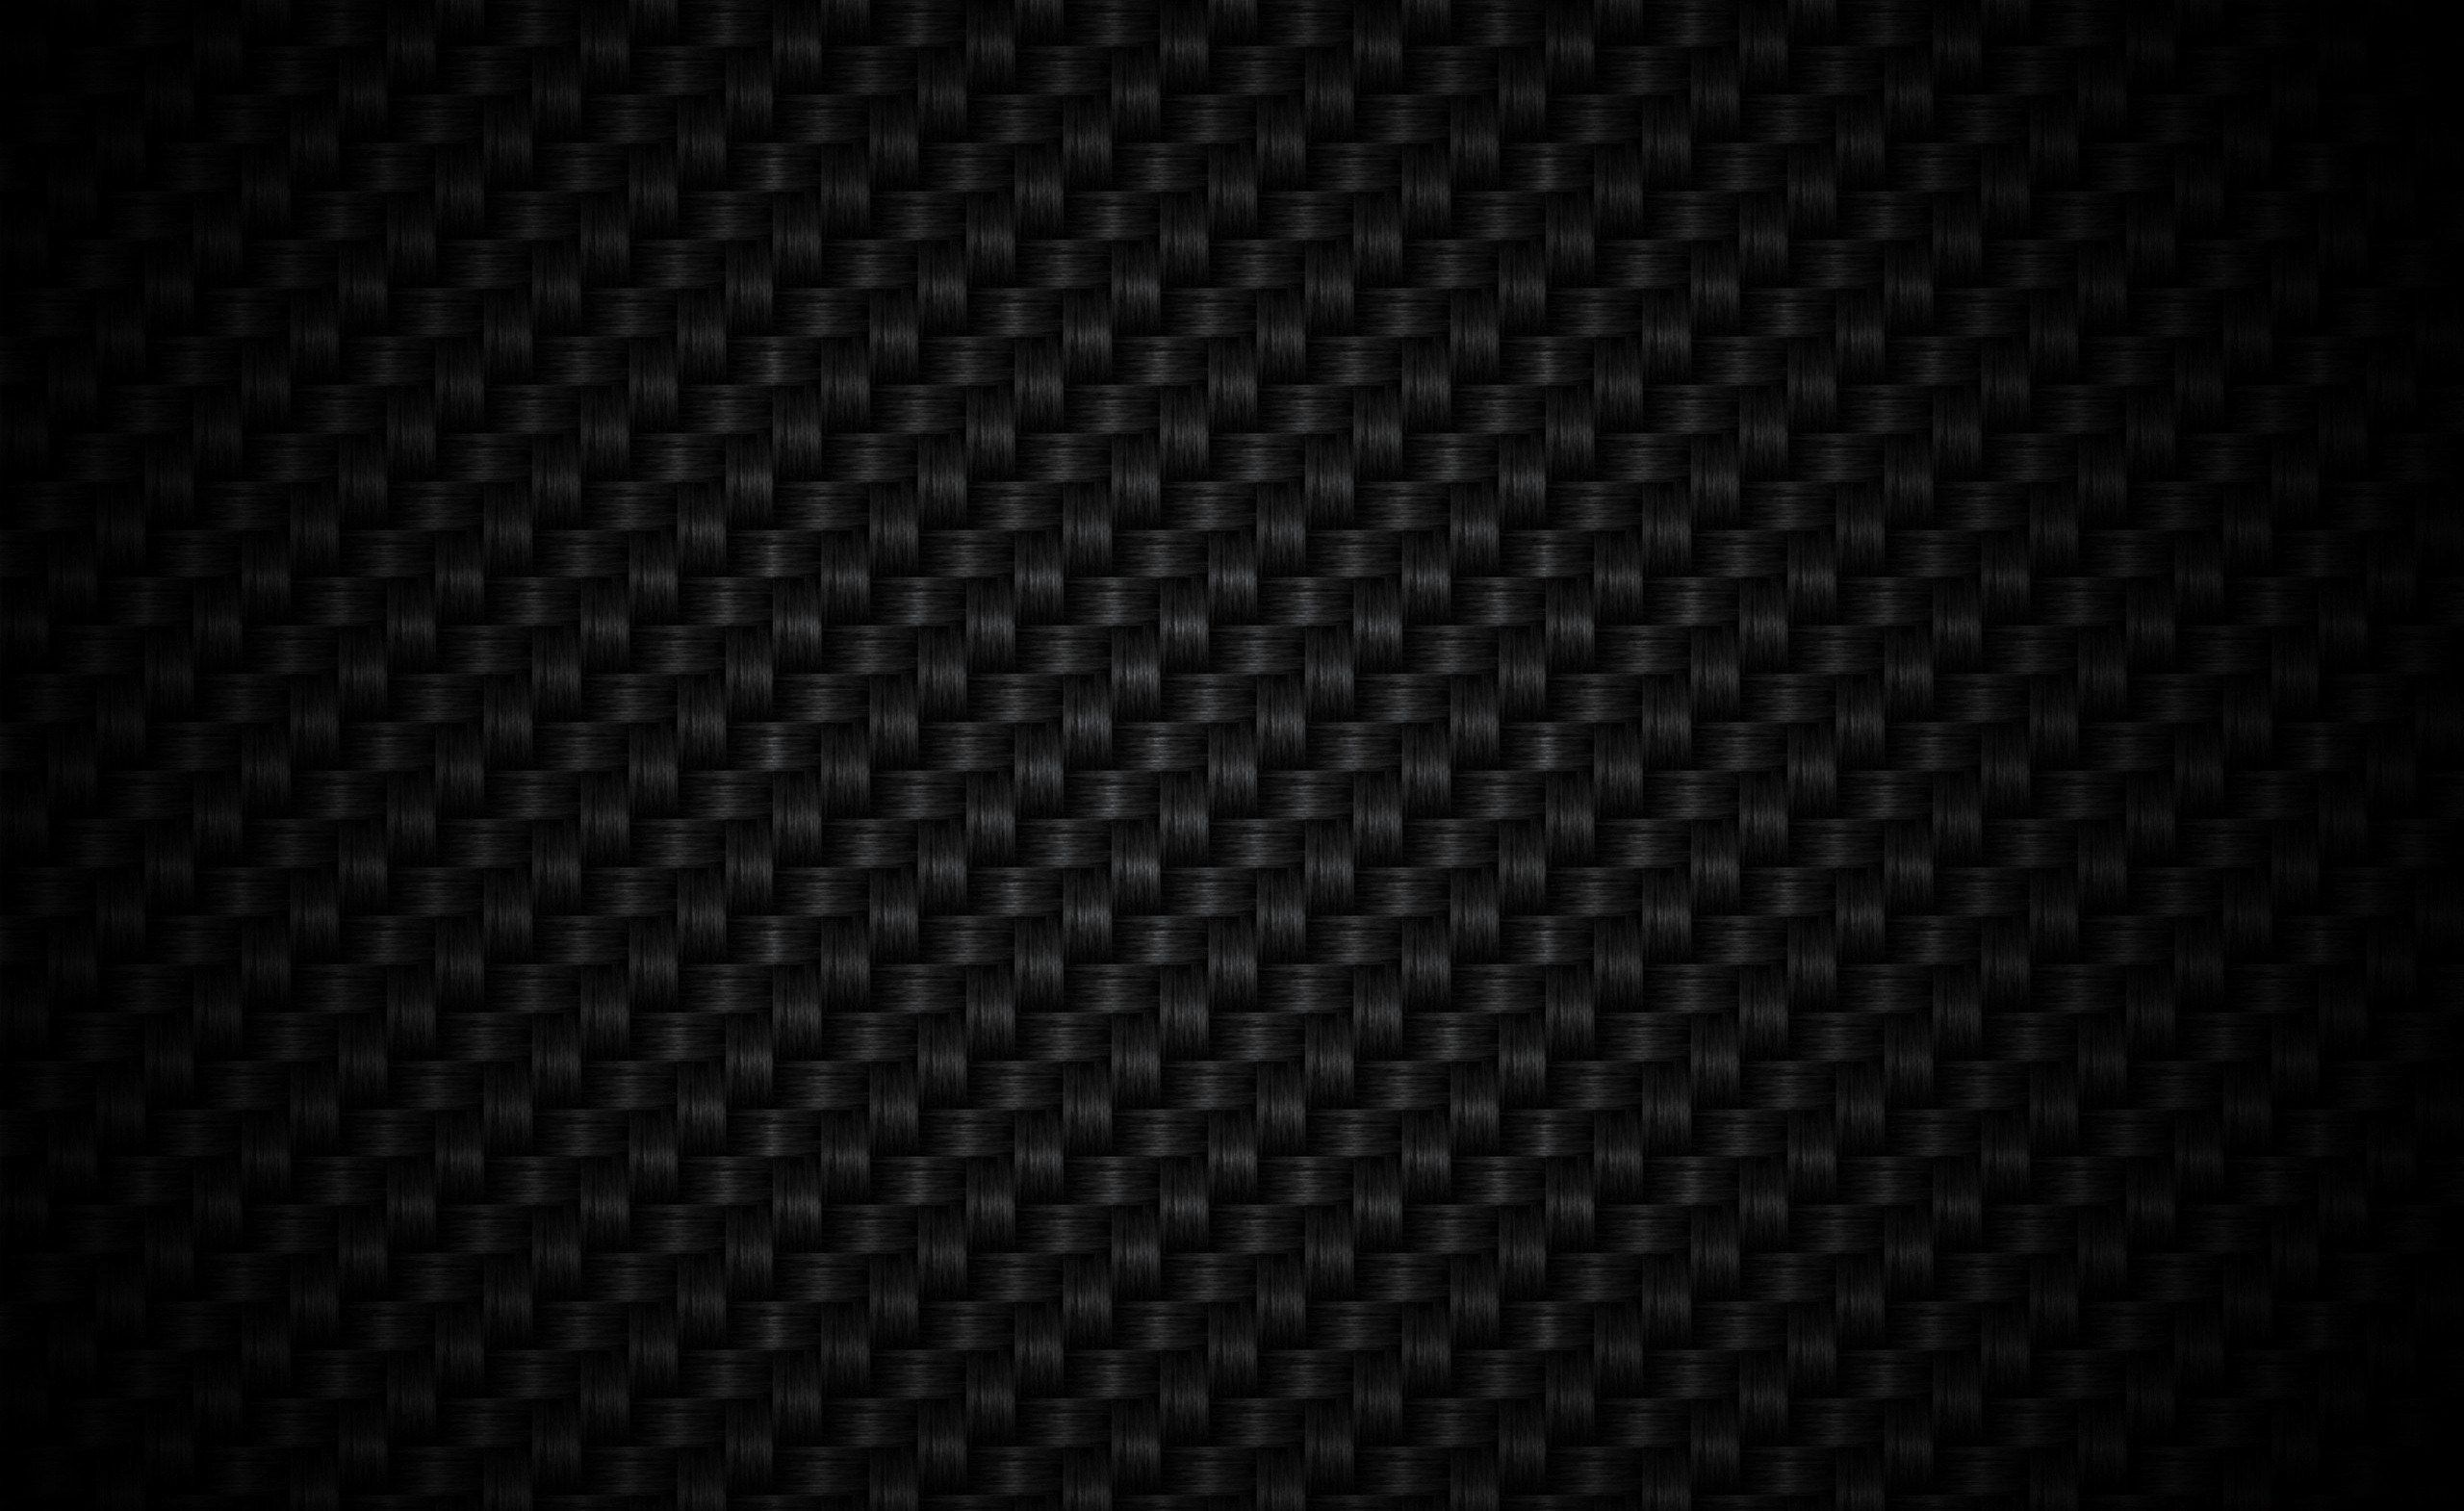 Black Textured Wallpapers - Top Free Black Textured Backgrounds -  WallpaperAccess